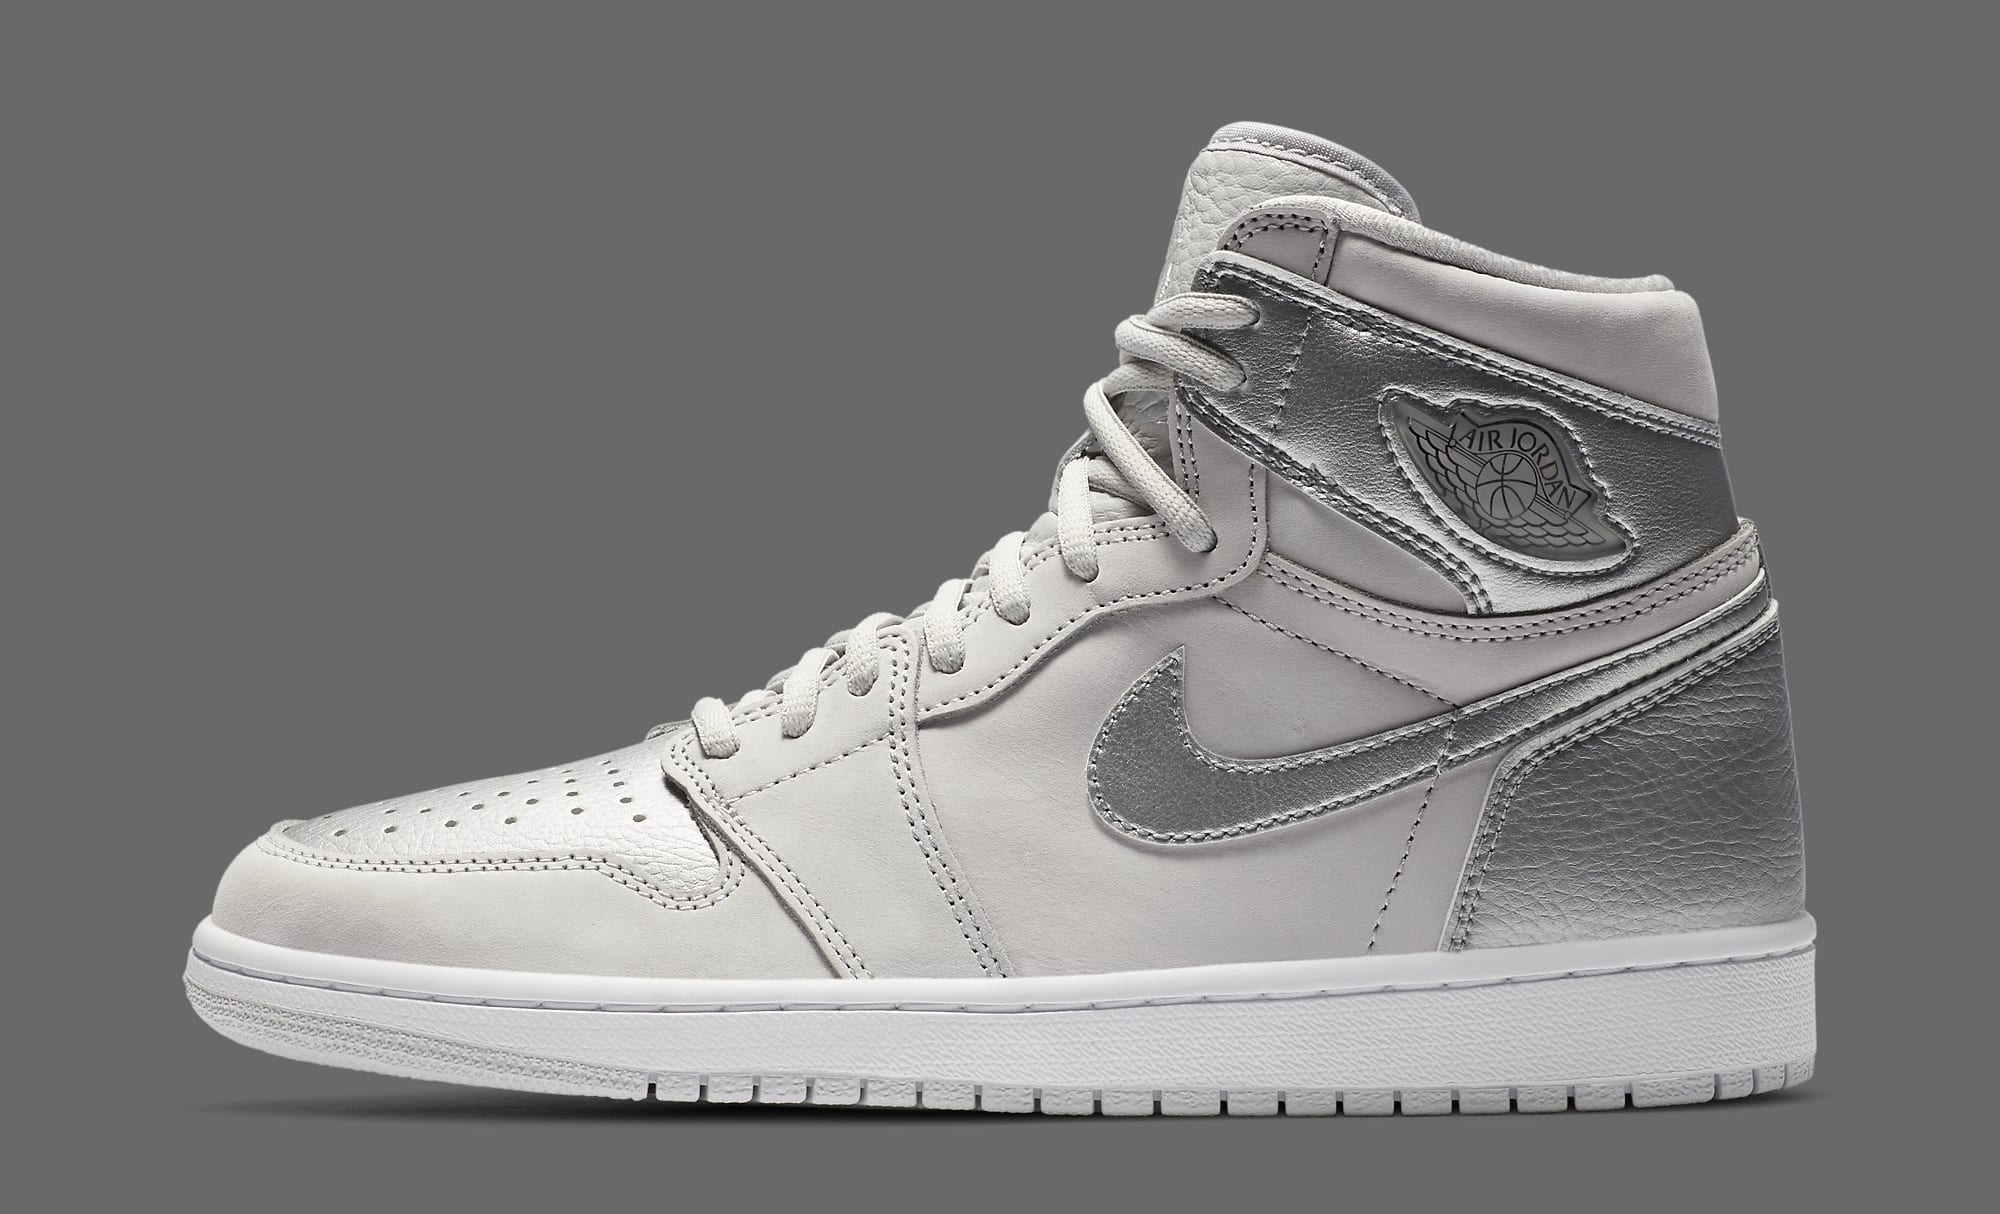 Air Jordan 1 Retro High OG CO.JP 'Metallic Silver' DA0382-029 Lateral